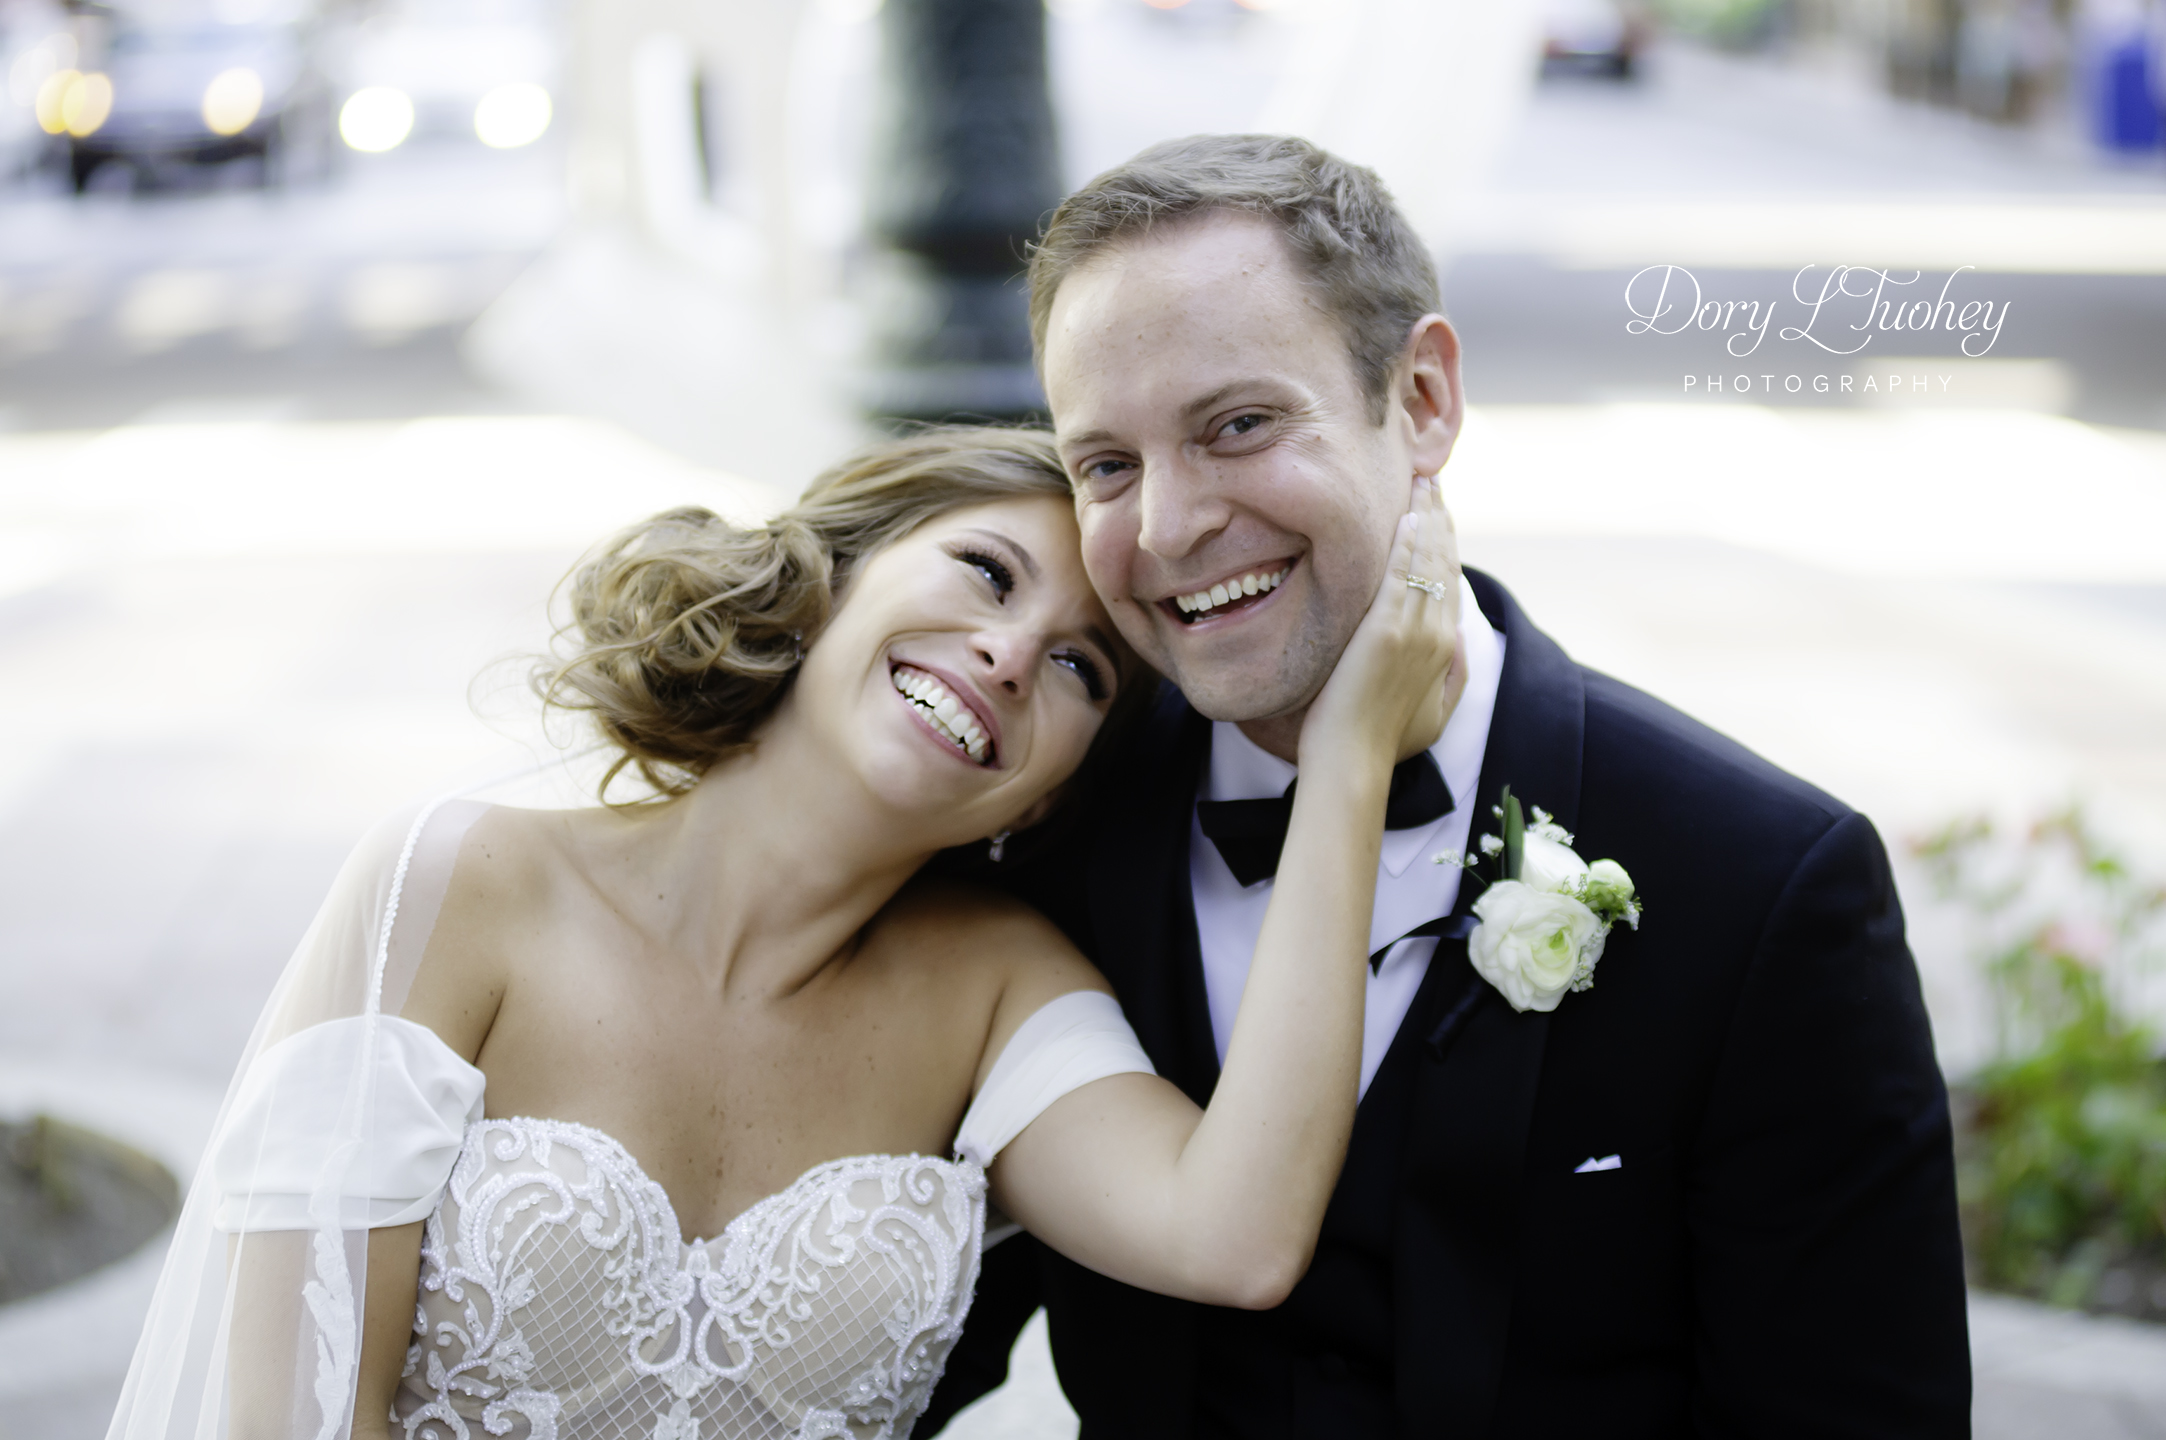 Wedding_chicago_bride_groom_photographer_wisconsin_gren_bay_wit_loyola_16.jpg